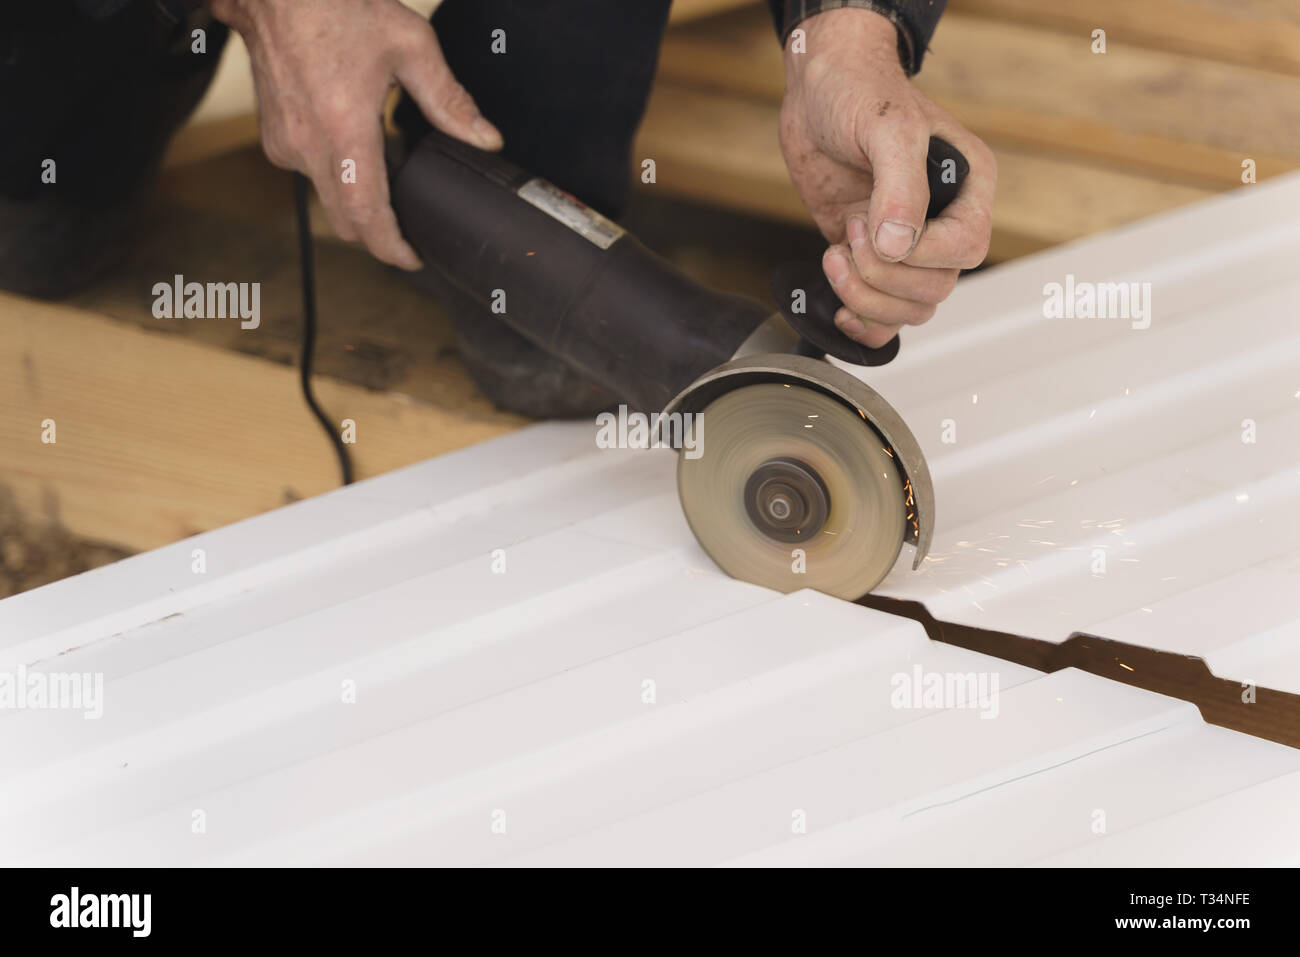 Construction worker sawing steel sheet with trapezoidal profile - Stock Image